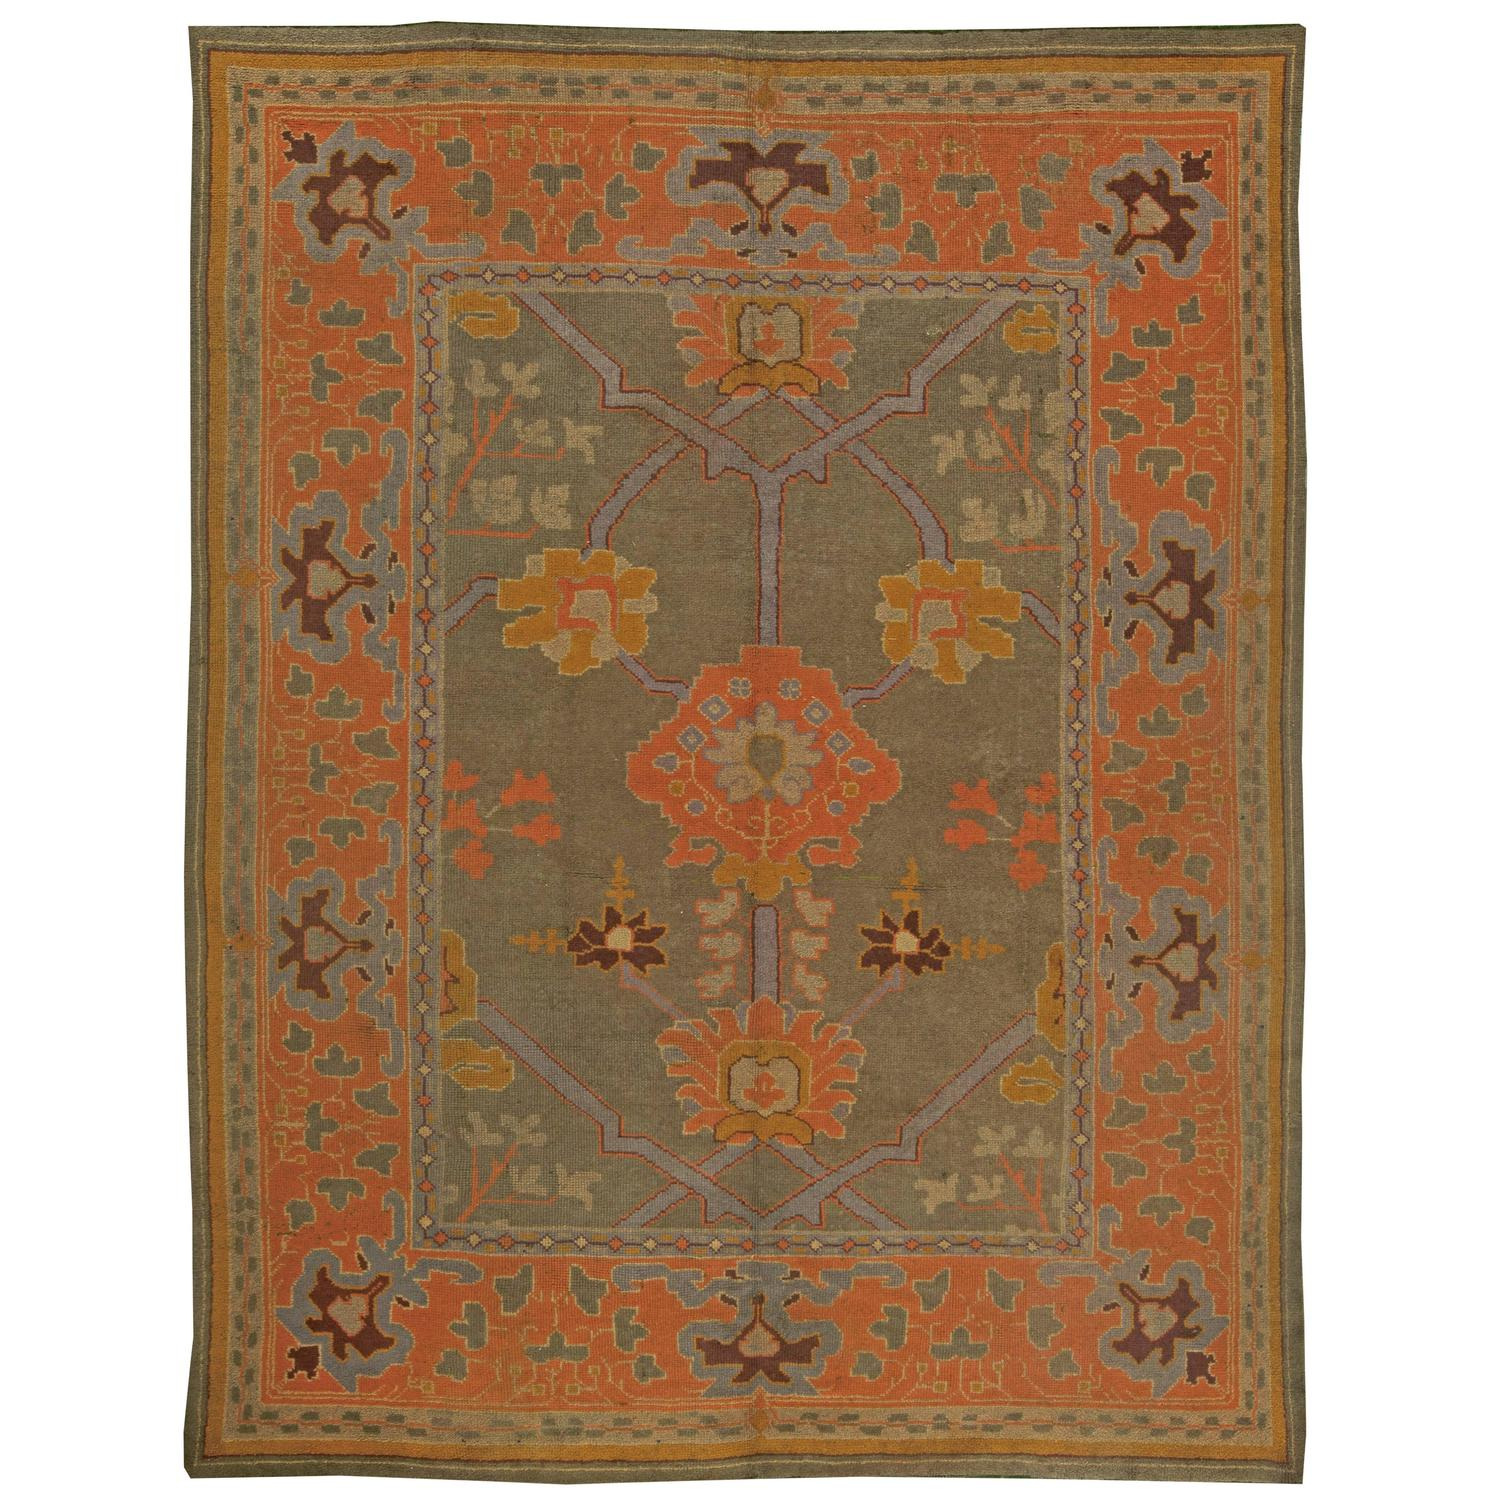 Vintage arts and crafts rug for sale at 1stdibs for Arts and crafts style rug